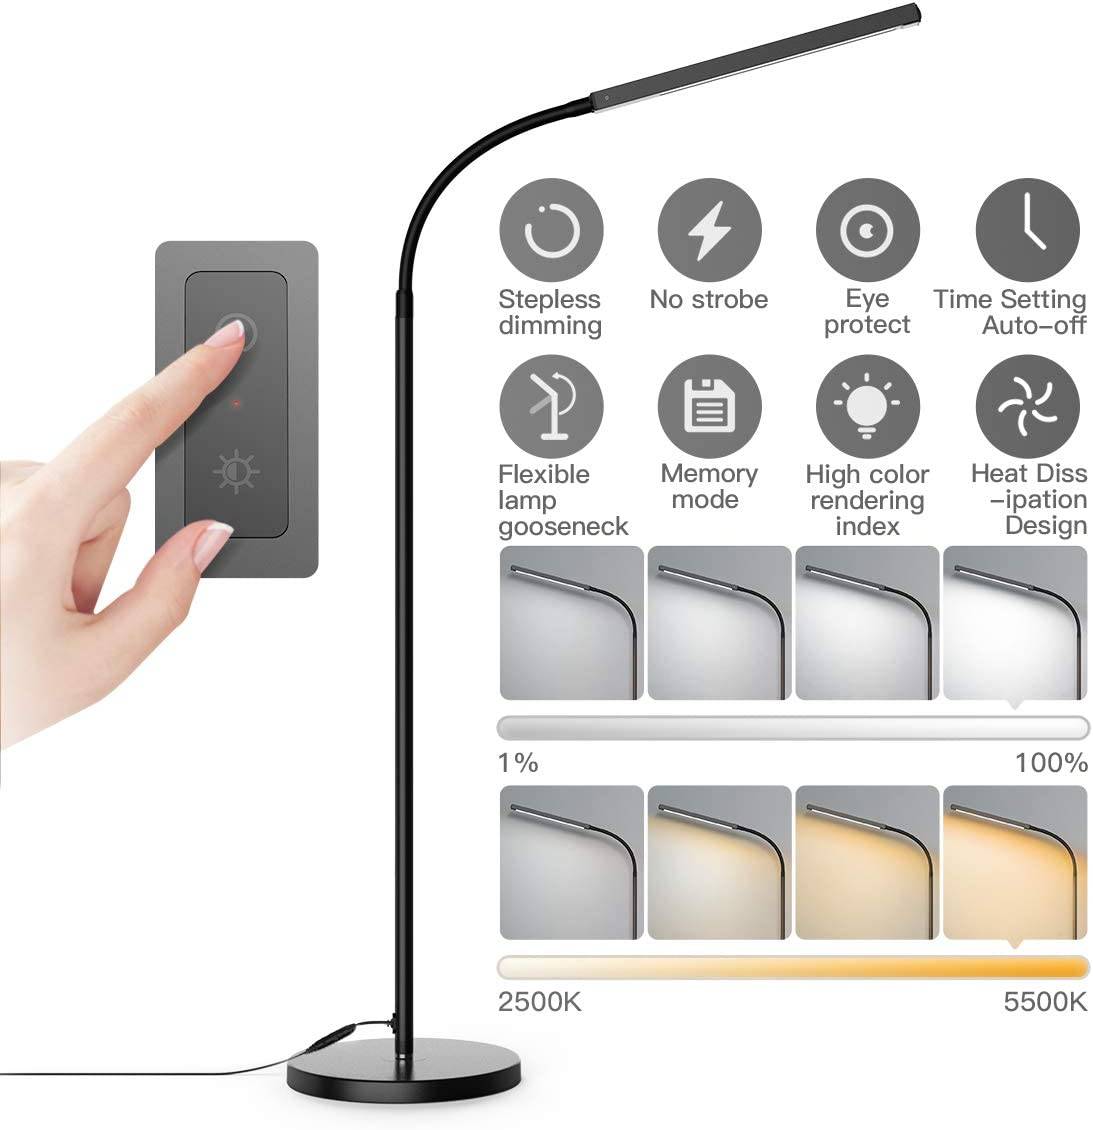 Floor Lamp, dodocool Touch Control Programmable Timer Floor Lamp for Living Room and 4 Color Temperatures Standing Lamp with Stepless Dimmer,2500K-6000K LED Reading Lamp for Bedroom,Home,Office